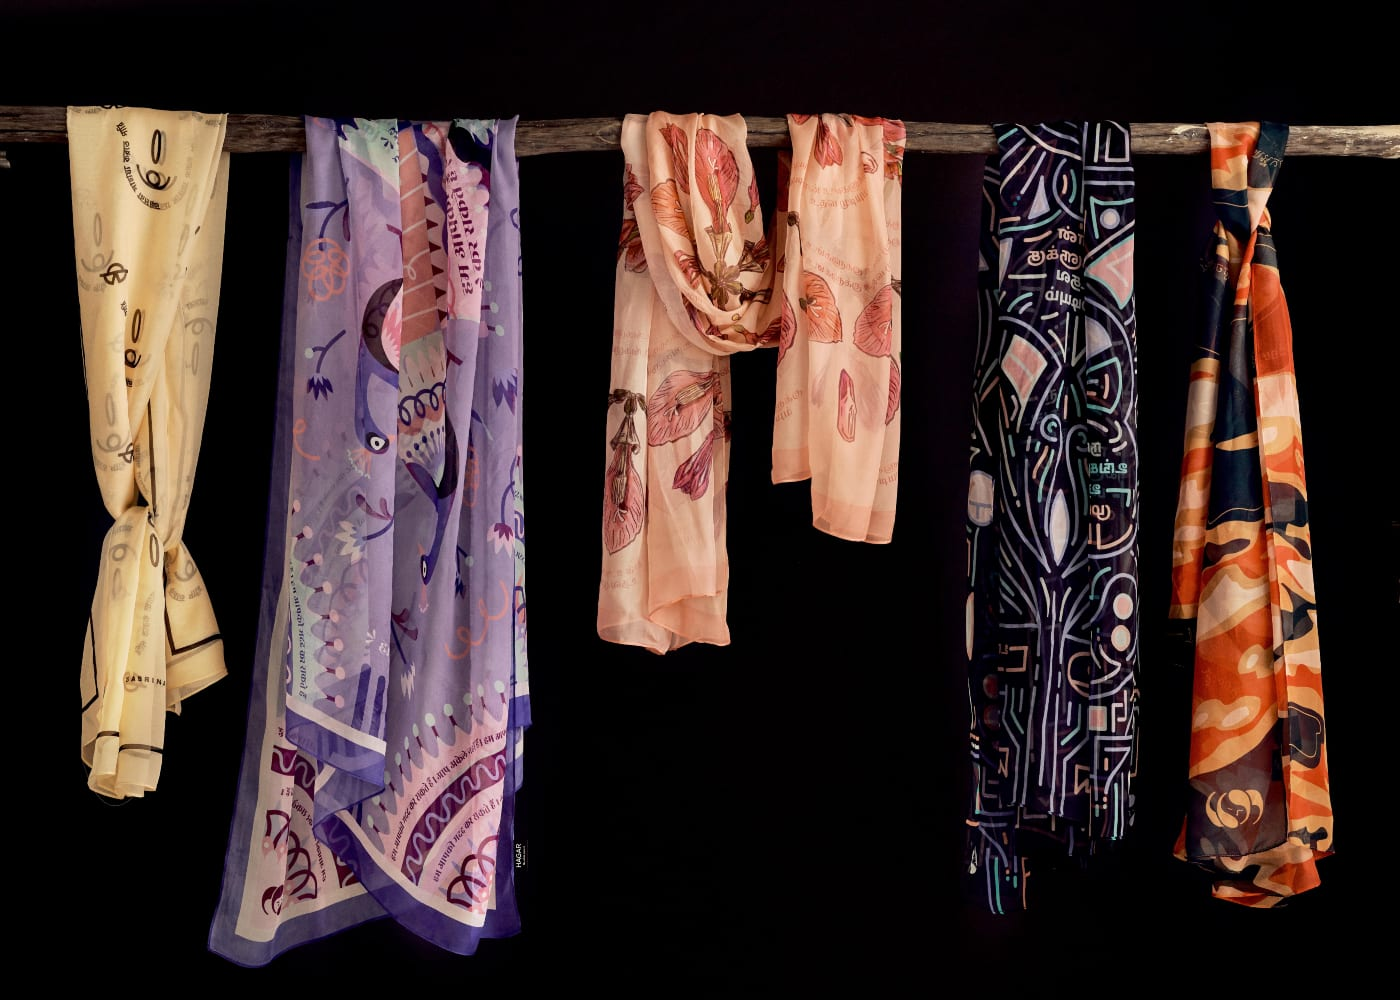 Find of the week: Hagar Singapore scarves that shine a light on human trafficking